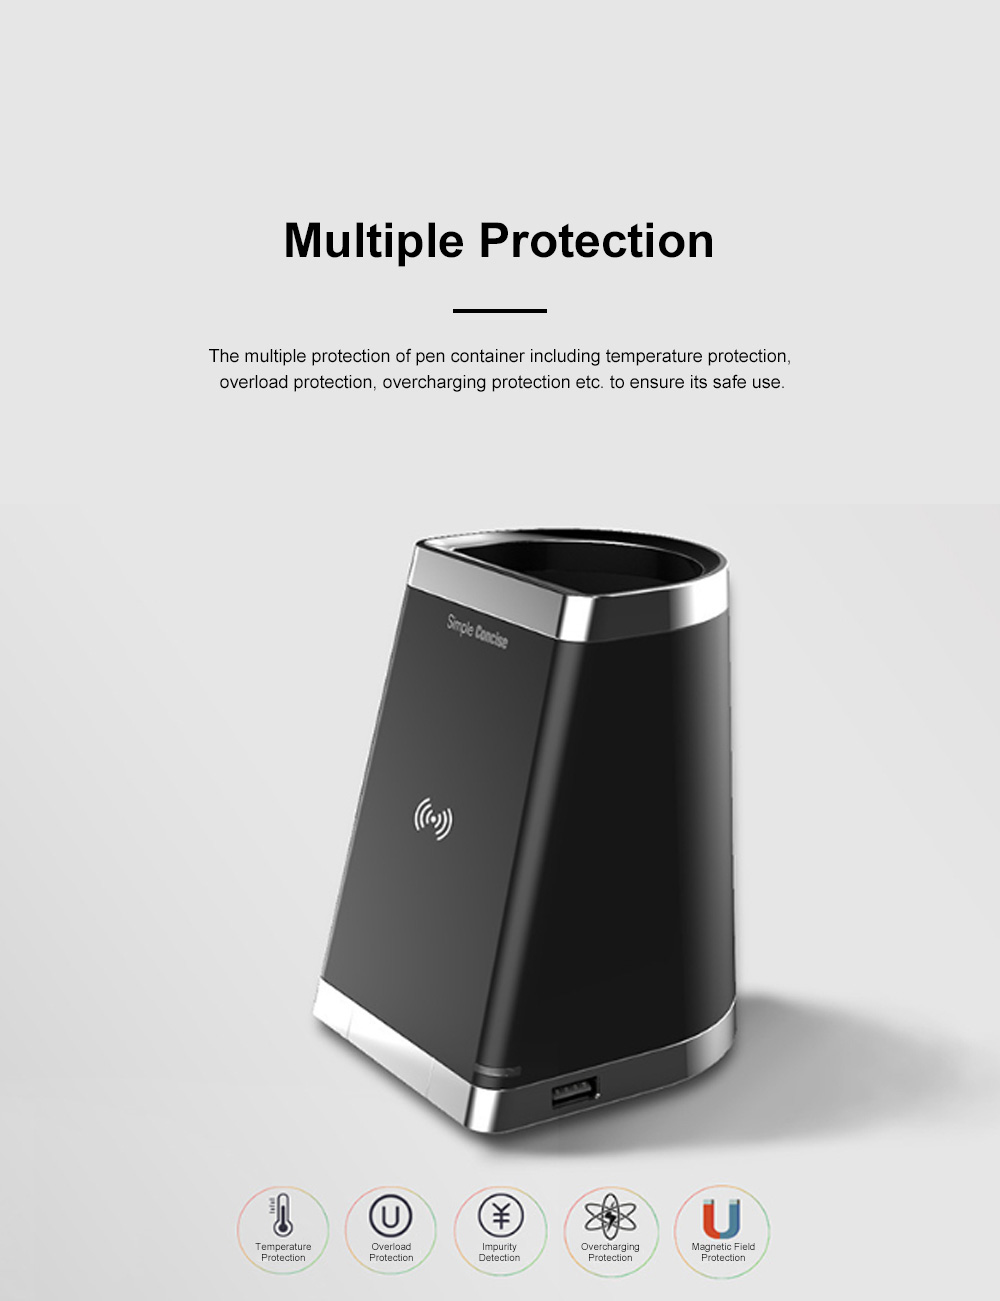 Wireless Rechargeable Desktop Pen Container for Table Top Storage Desktop Brush Pot Charger Drawer-like Charging Stand Tubular Pen Rack 2